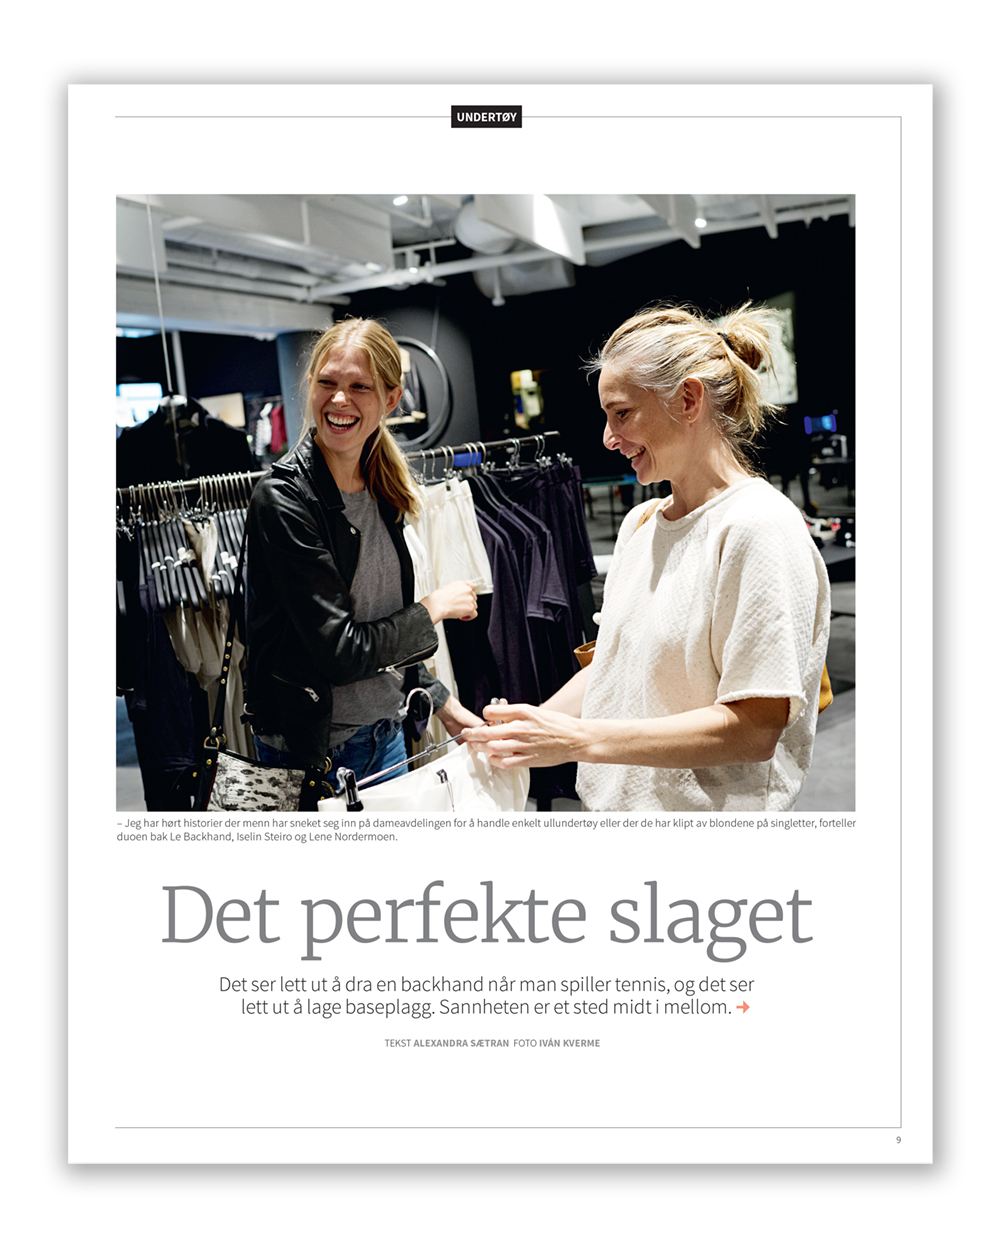 Iselin and Lene in Finansavisen October 2015